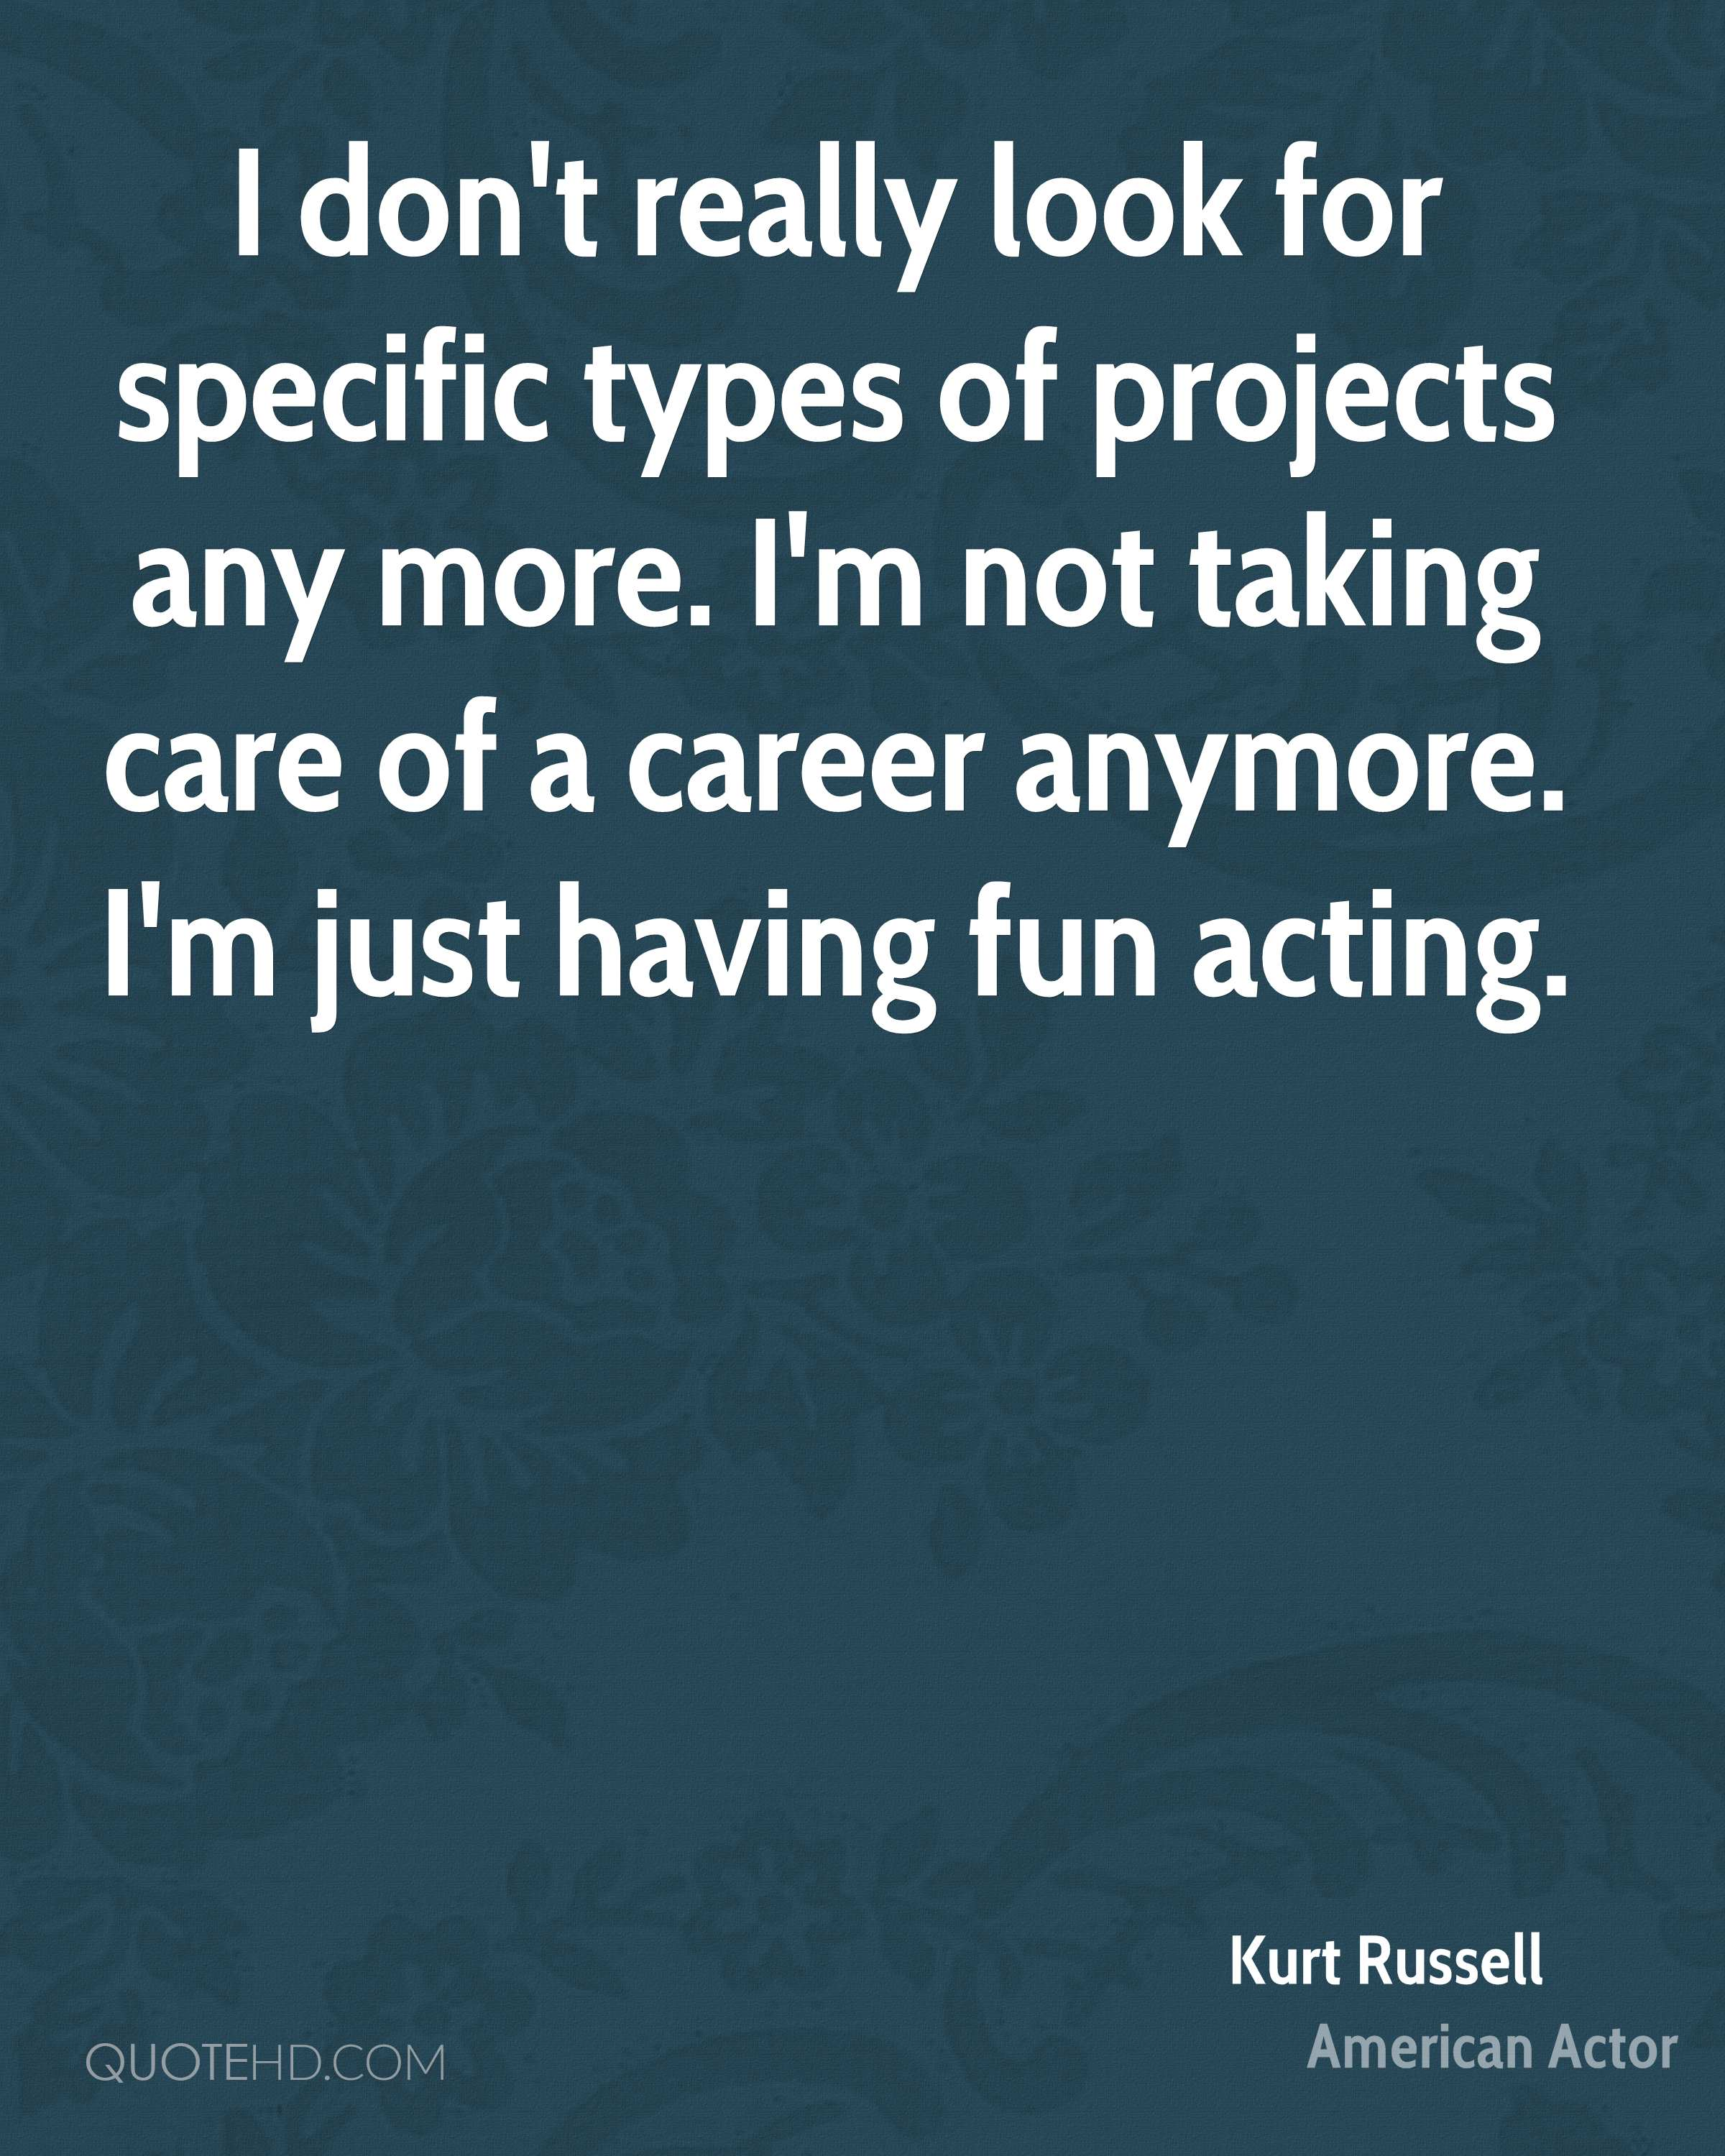 I don't really look for specific types of projects any more. I'm not taking care of a career anymore. I'm just having fun acting.